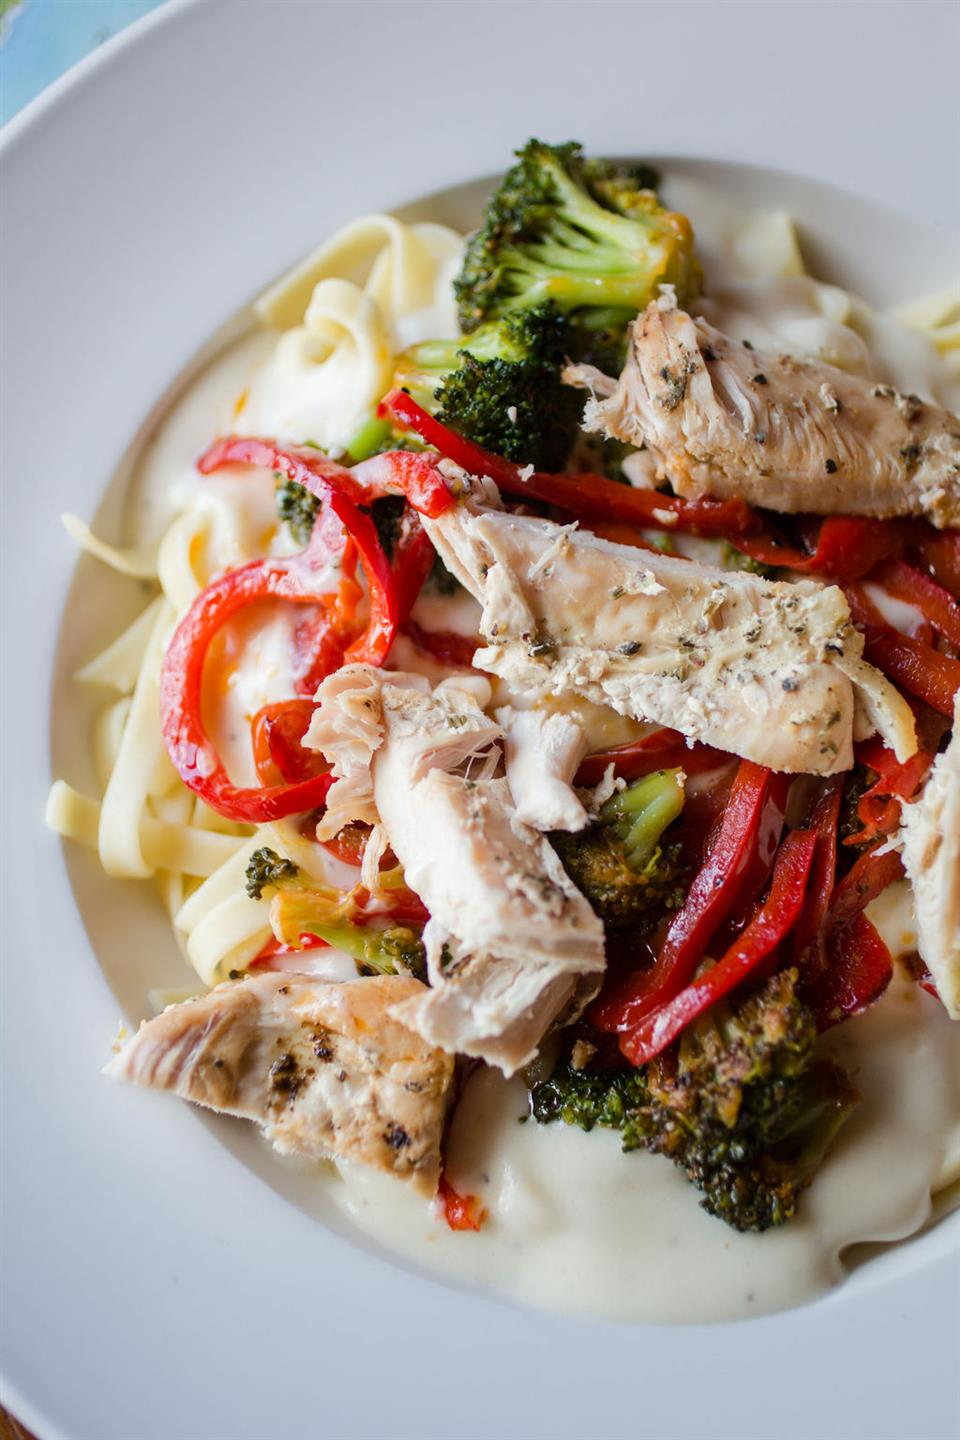 pasta with cream sauce, grilled chicken, peppers, broccoli and parmesan cheese